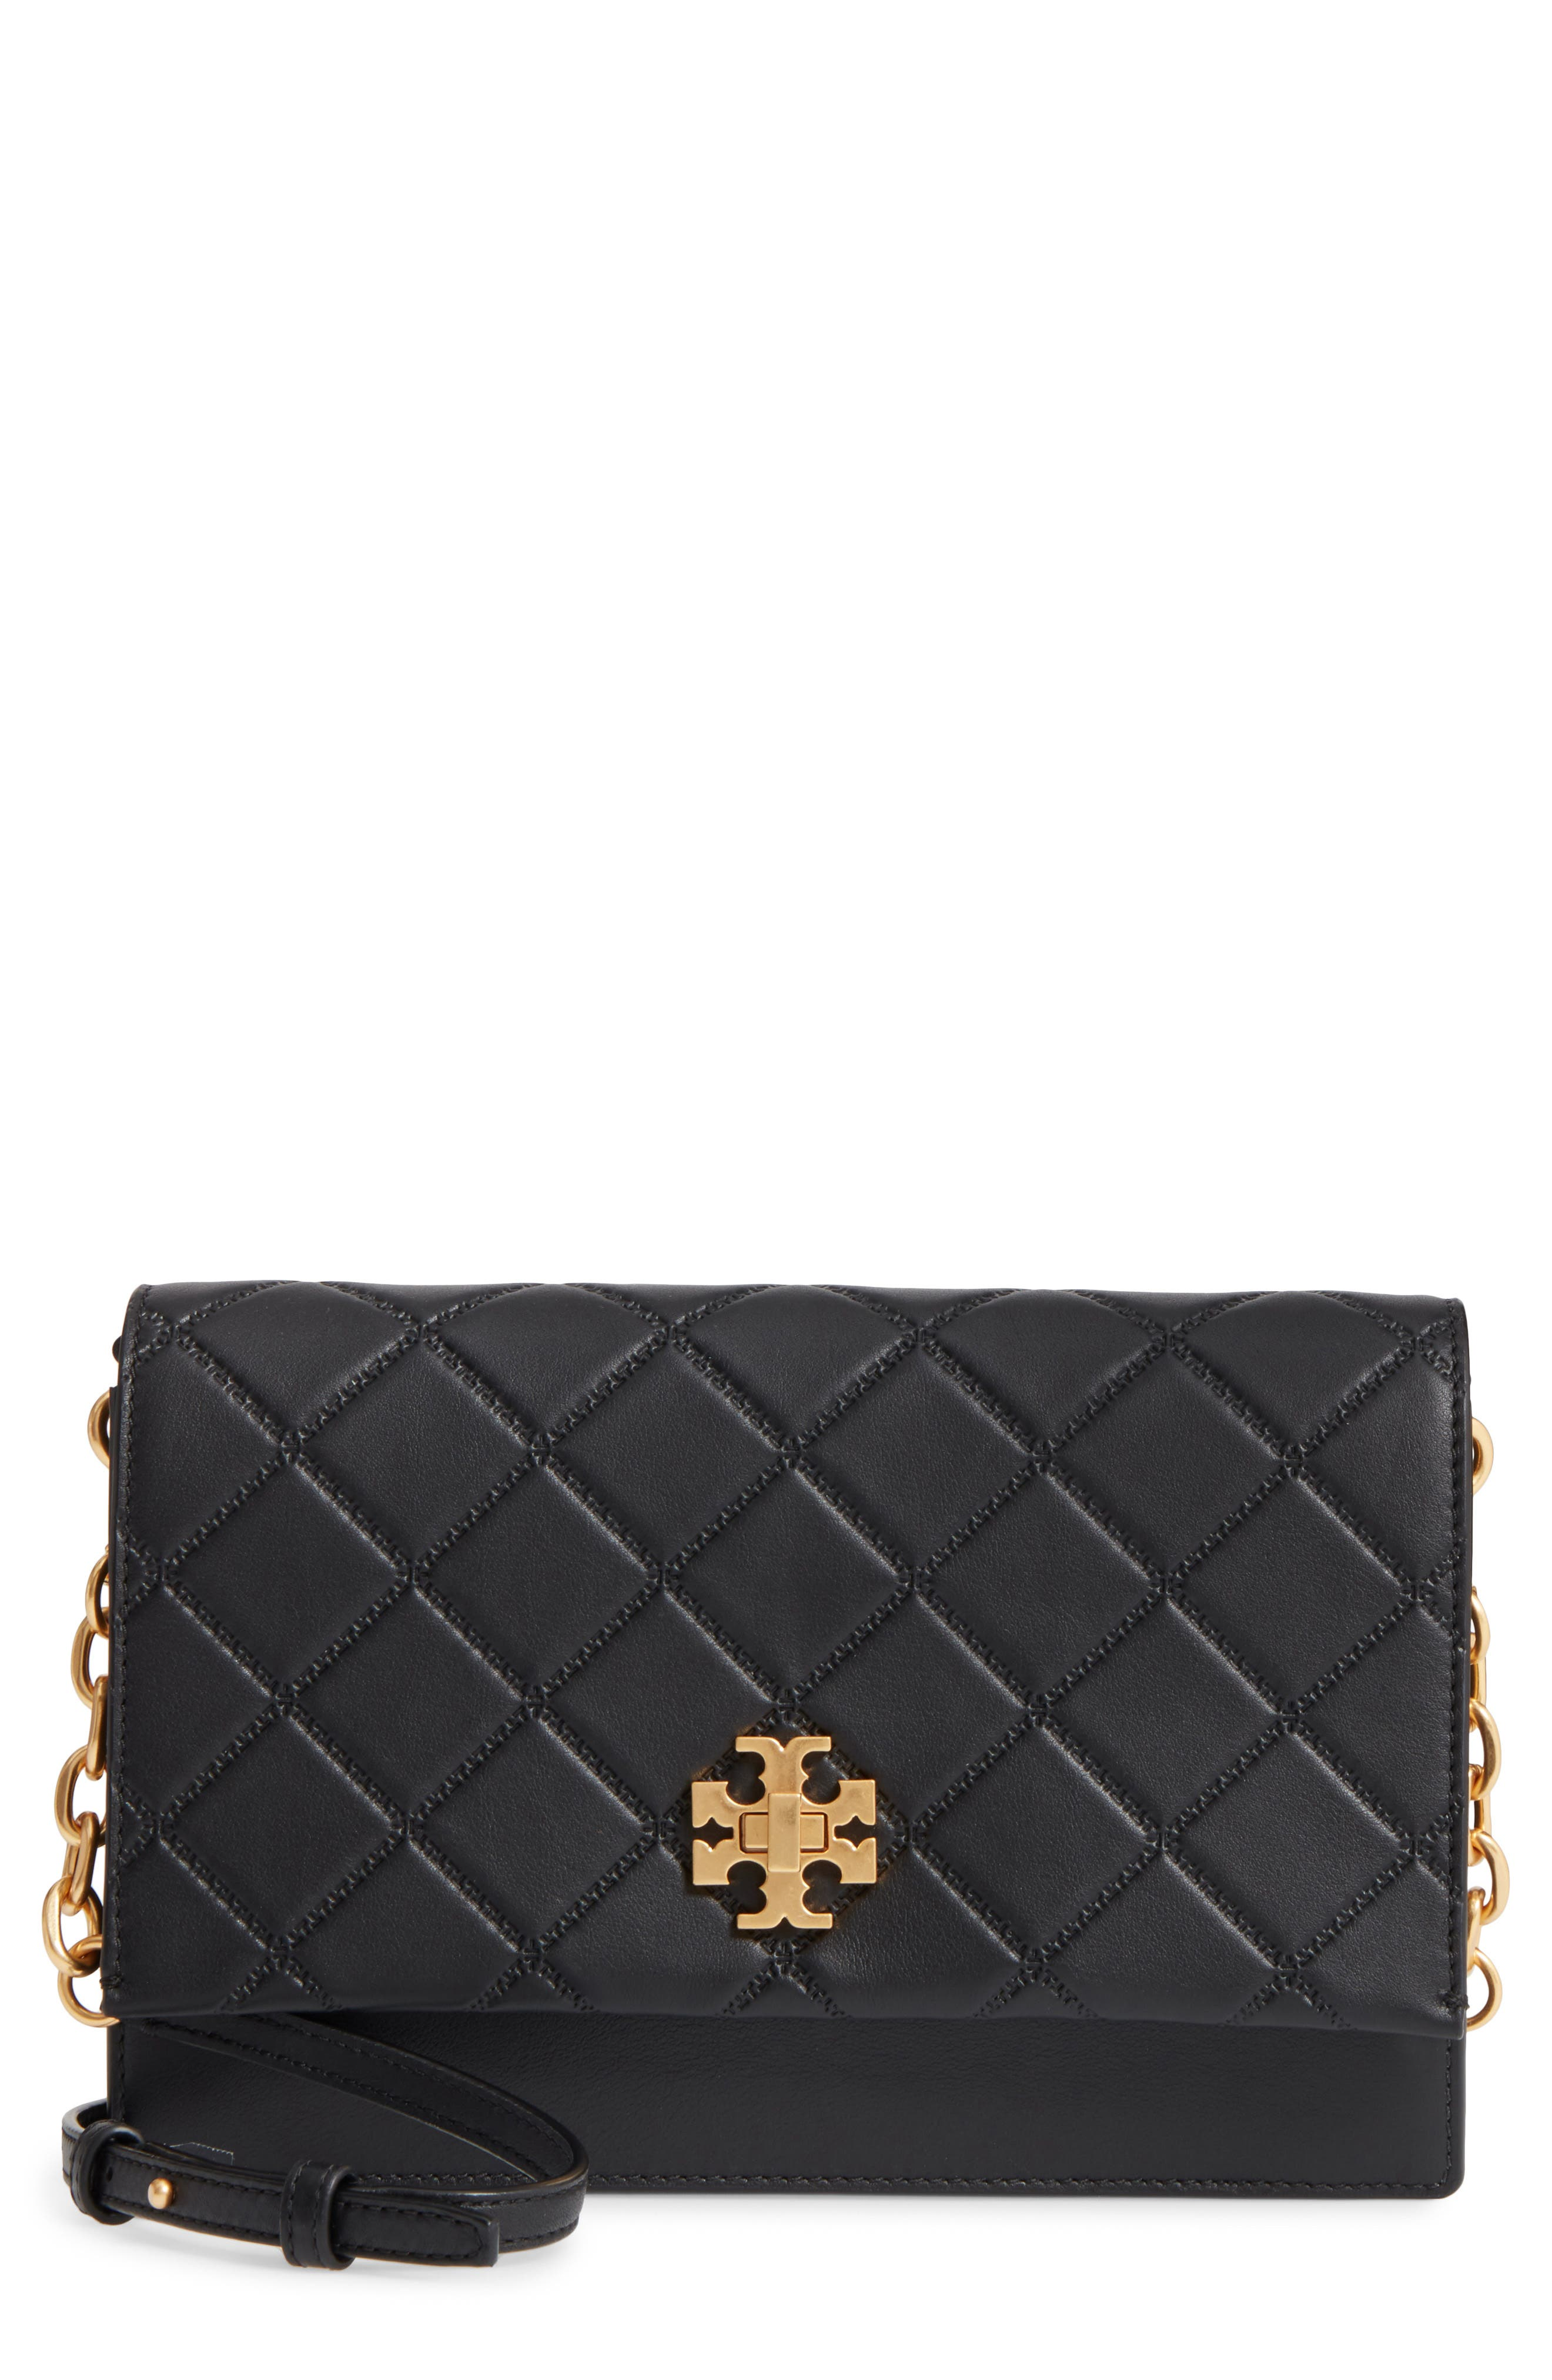 Tory Burch Georgia Quilted Leather Shoulder Bag